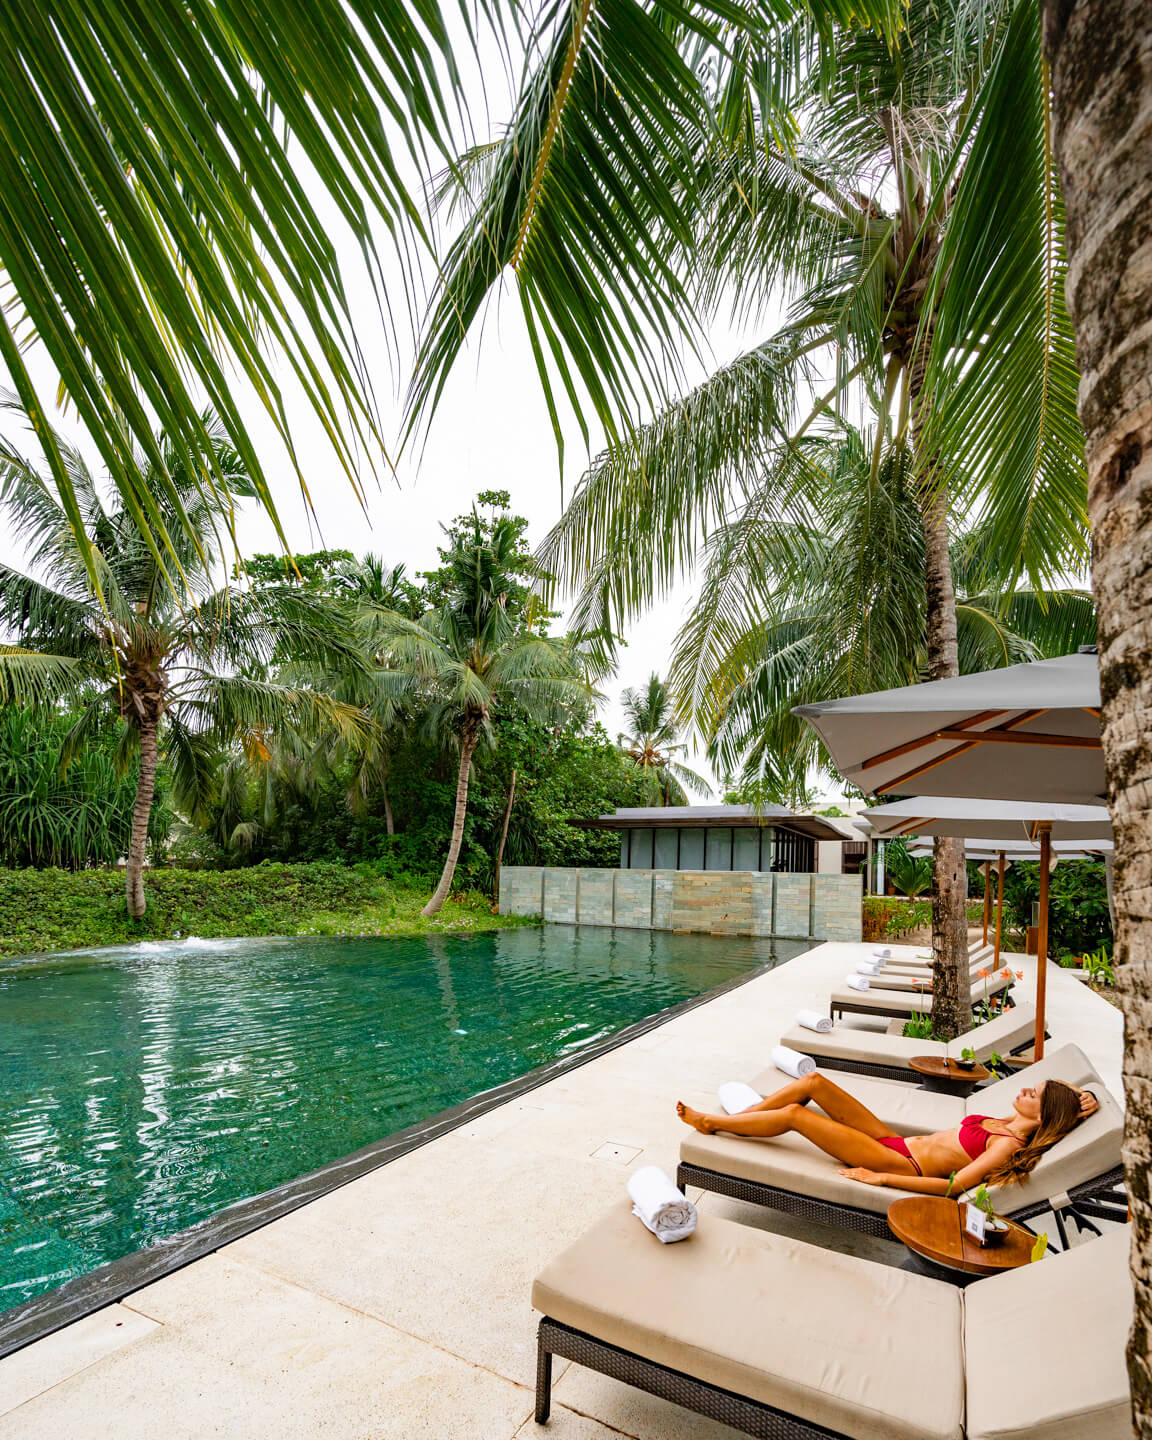 girl relaxing at a pool in The Maldives surrounded by palm trees